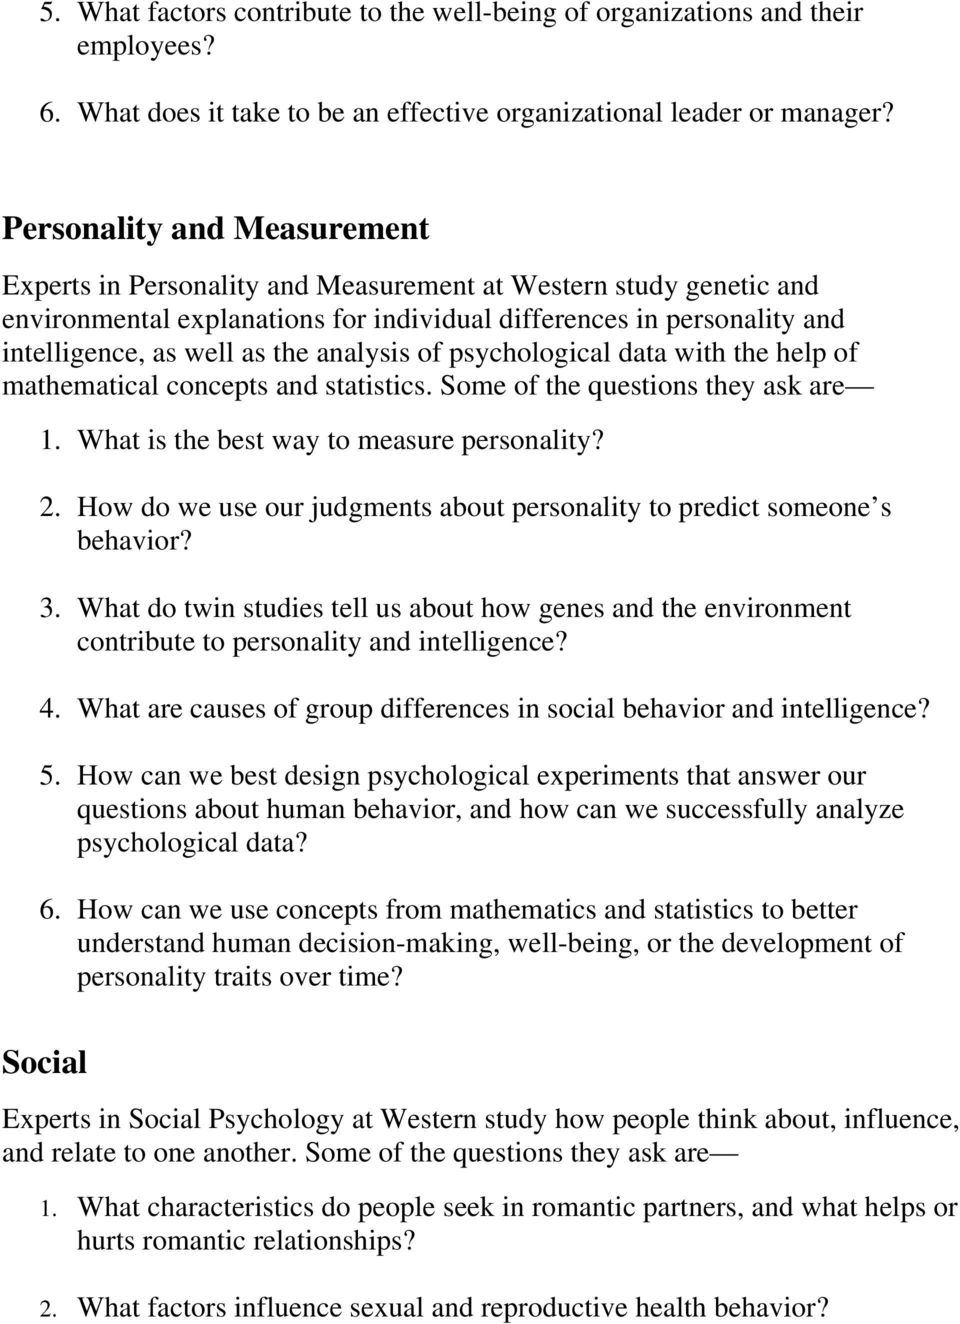 analysis of psychological data with the help of mathematical concepts and statistics. Some of the questions they ask are 1. What is the best way to measure personality? 2.